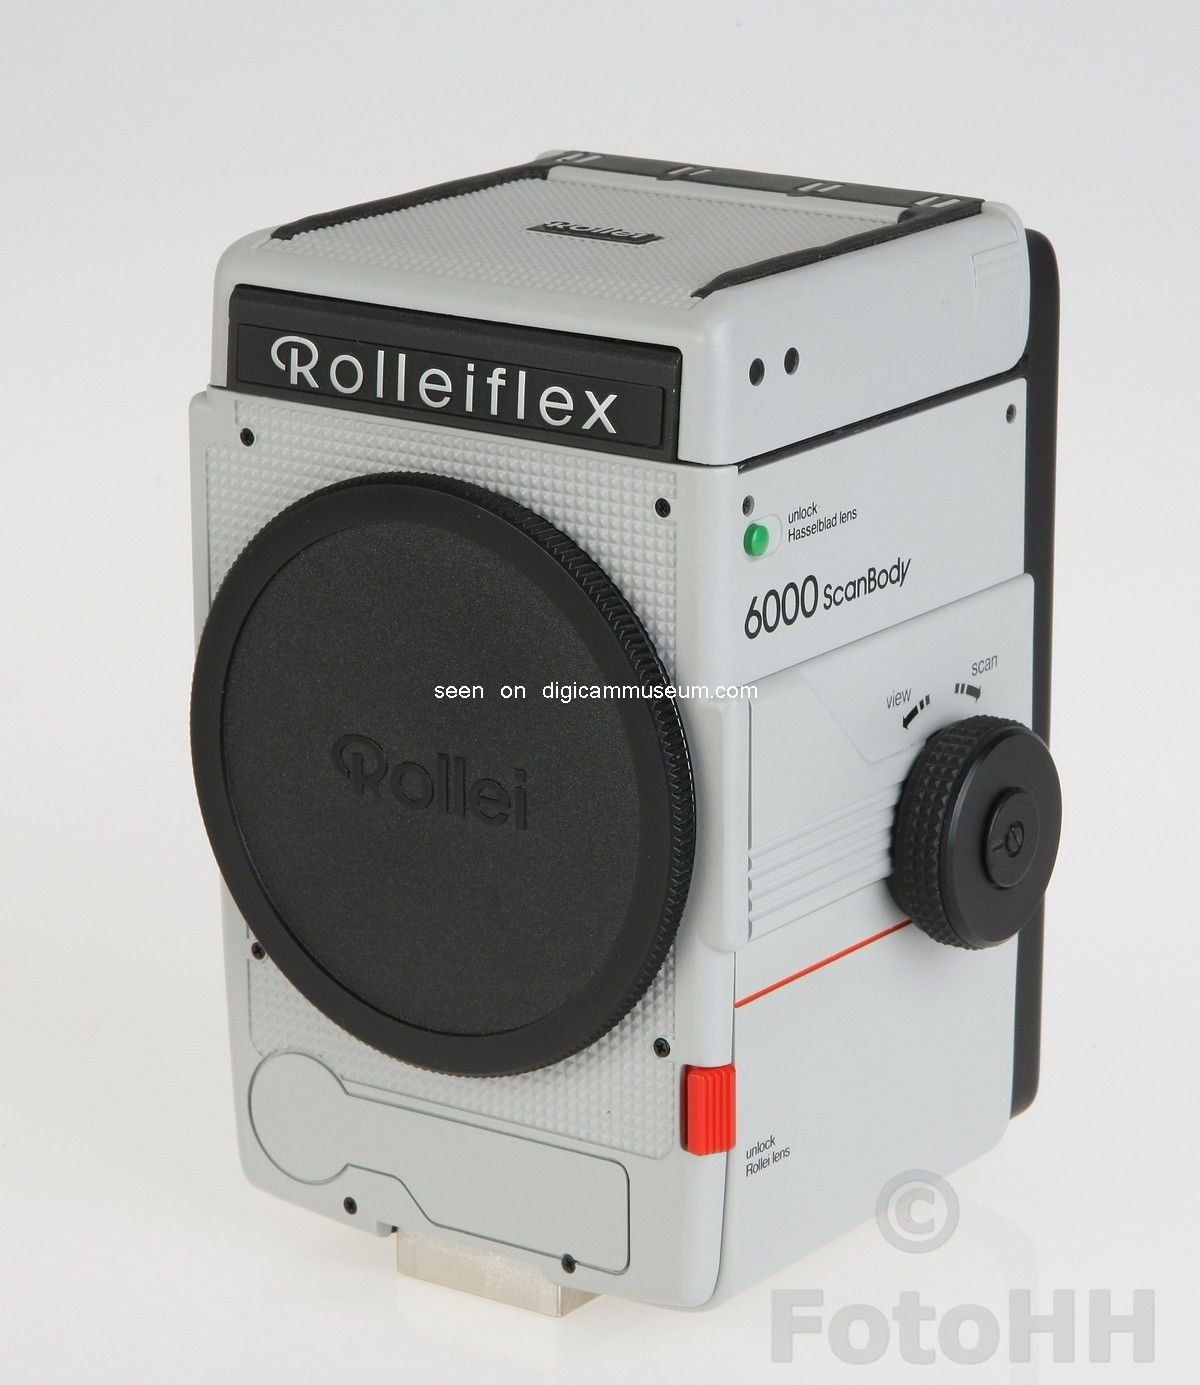 Rollei 6000 Scan Body Prototype (1989)